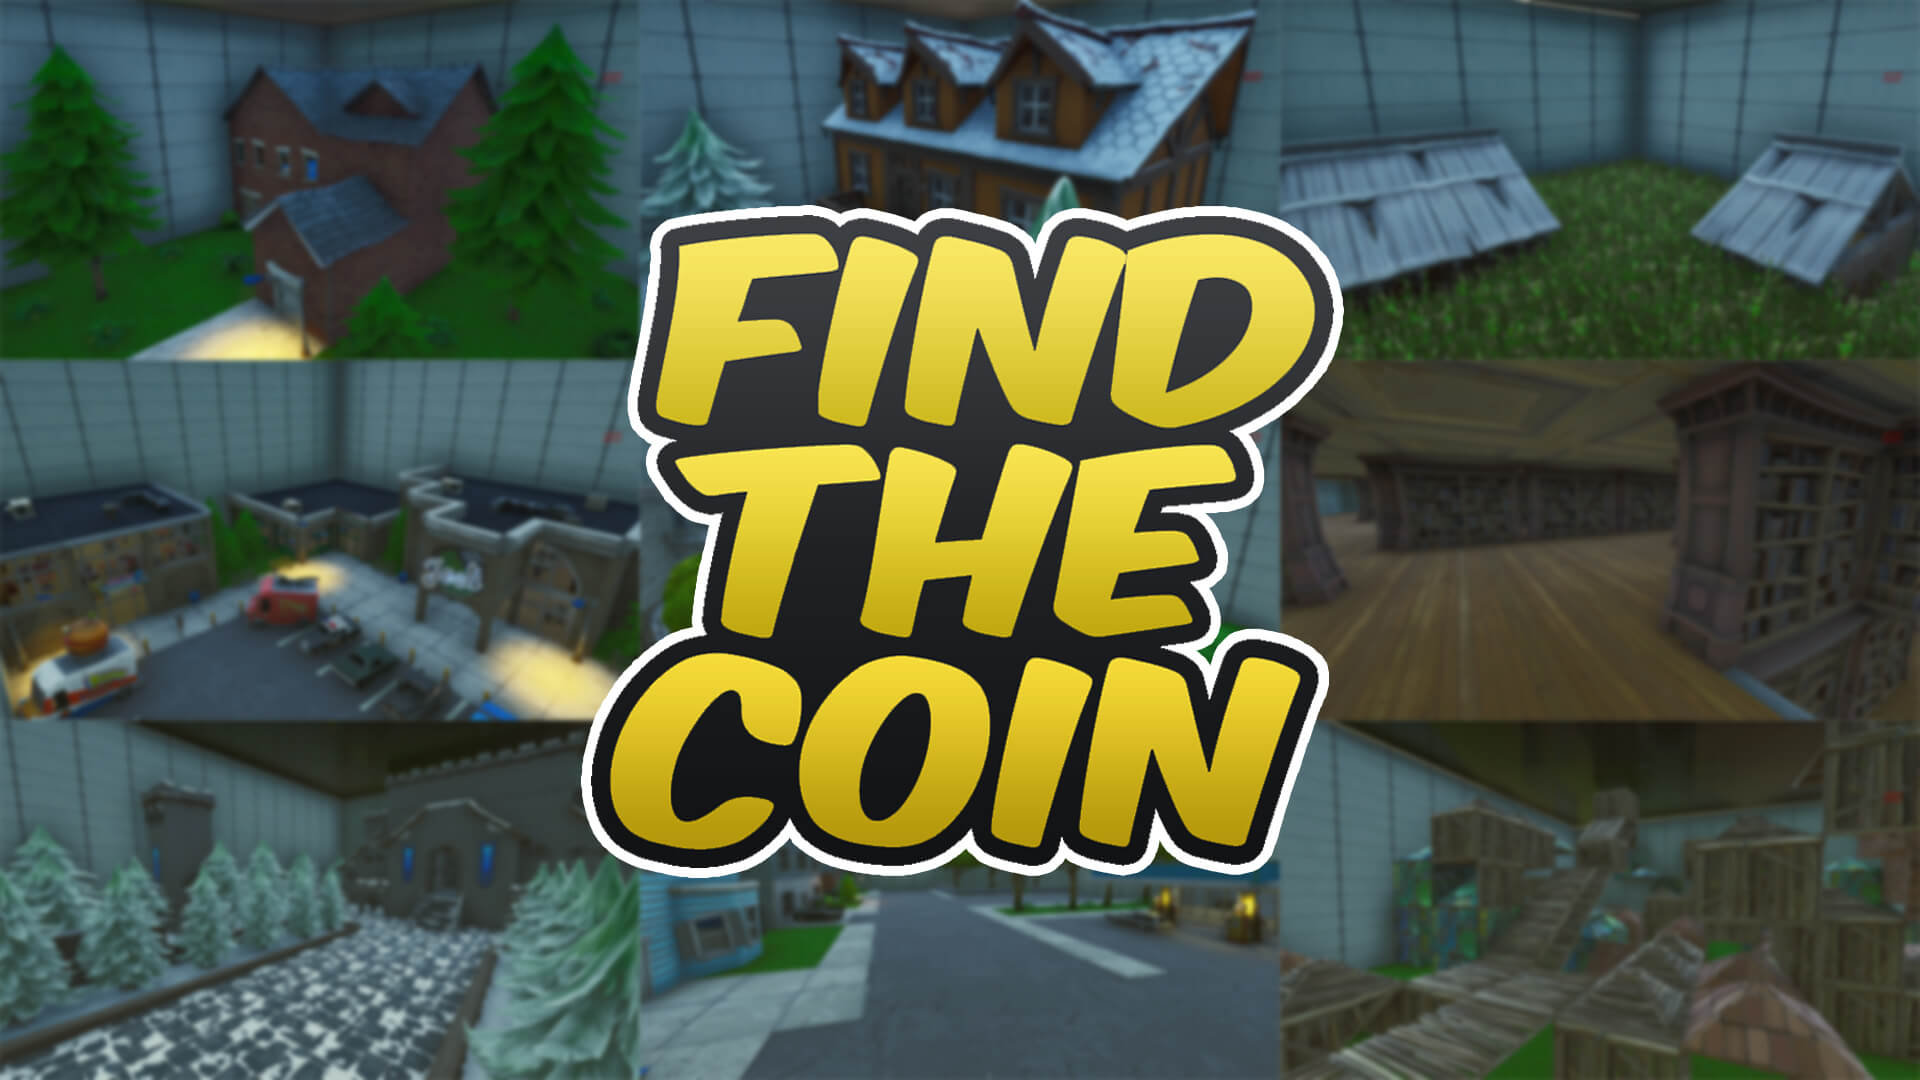 FIND THE COIN!